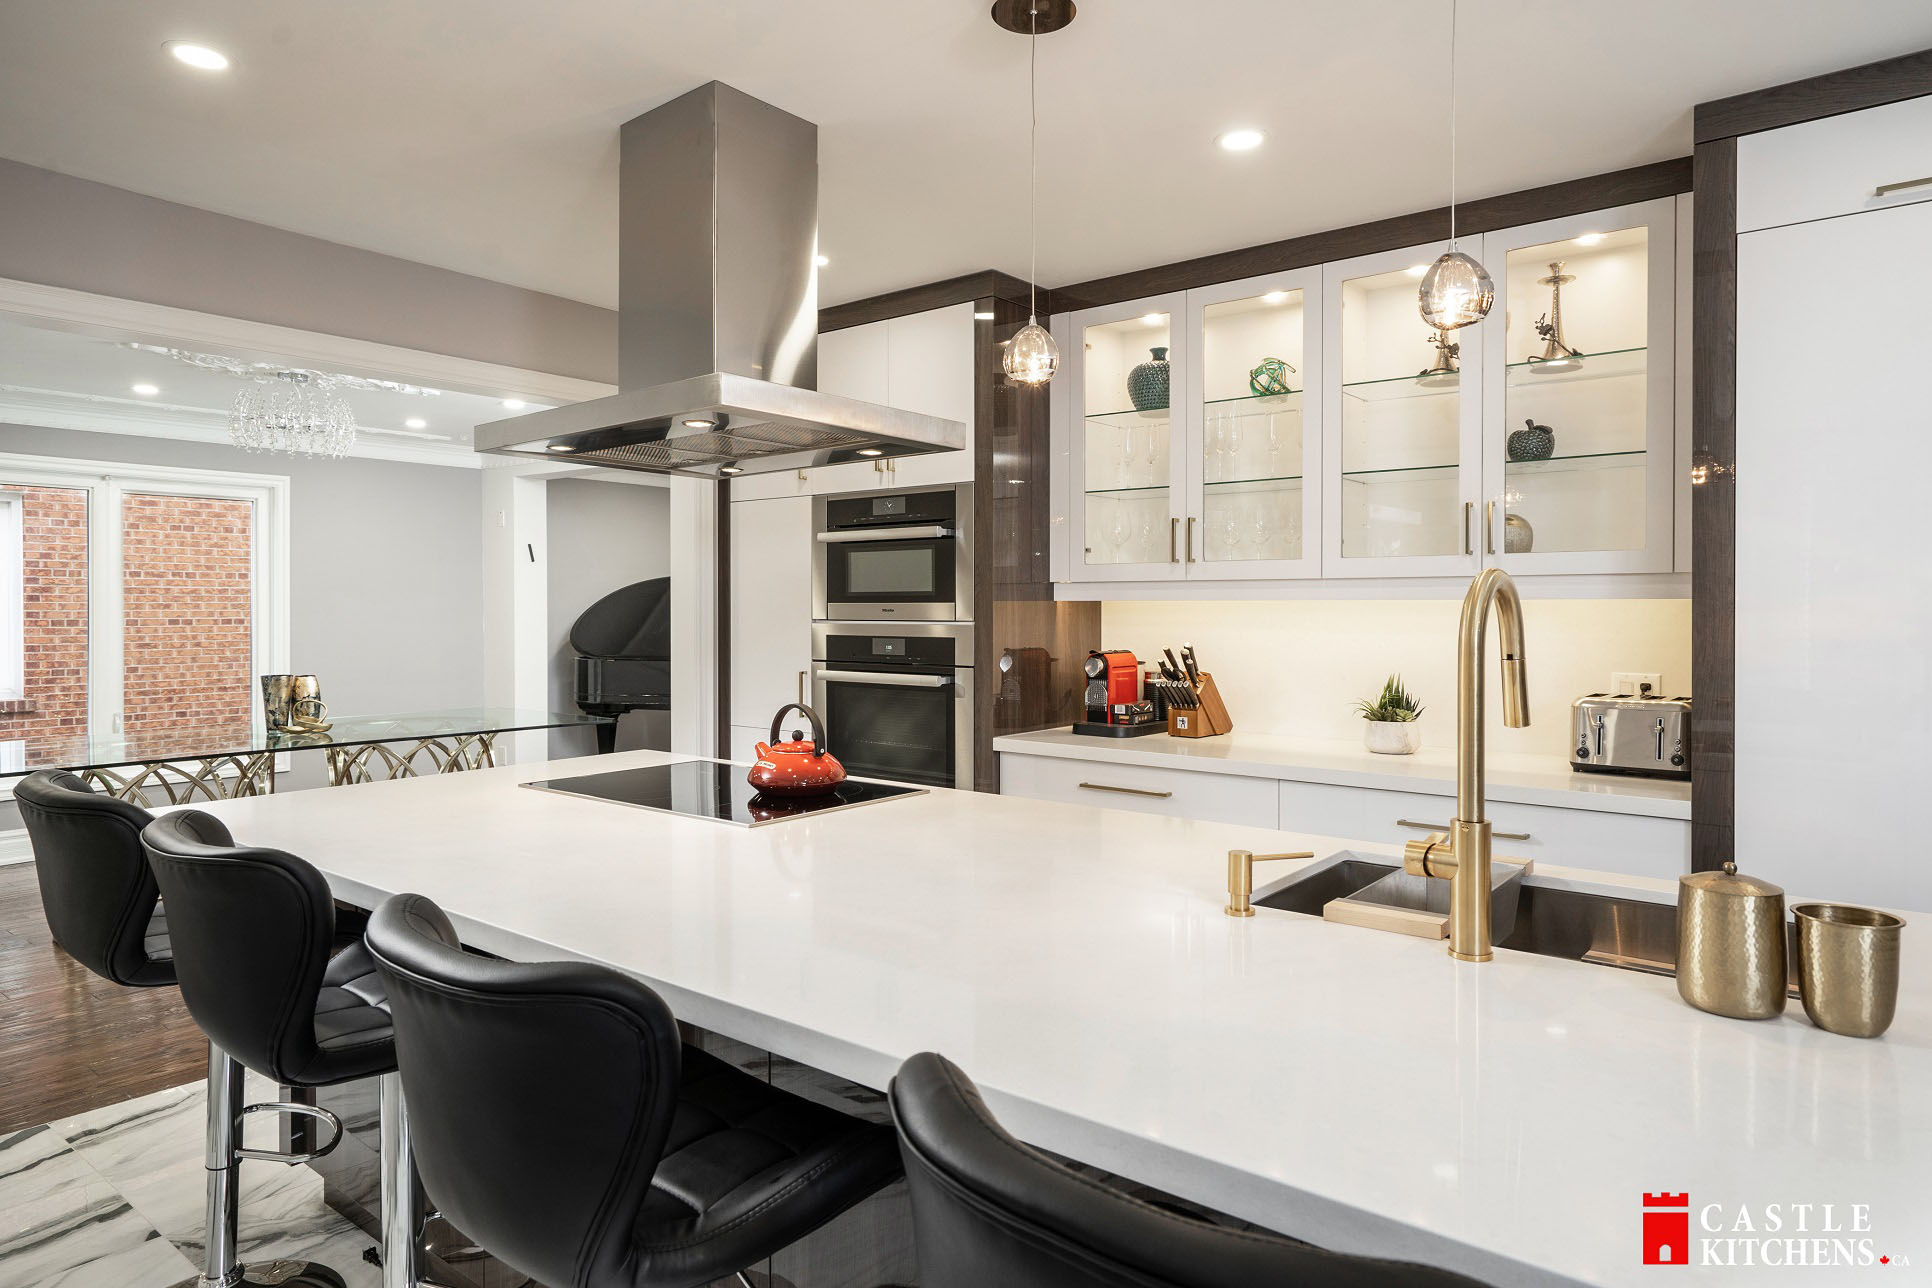 Kitchen Designer in Markham